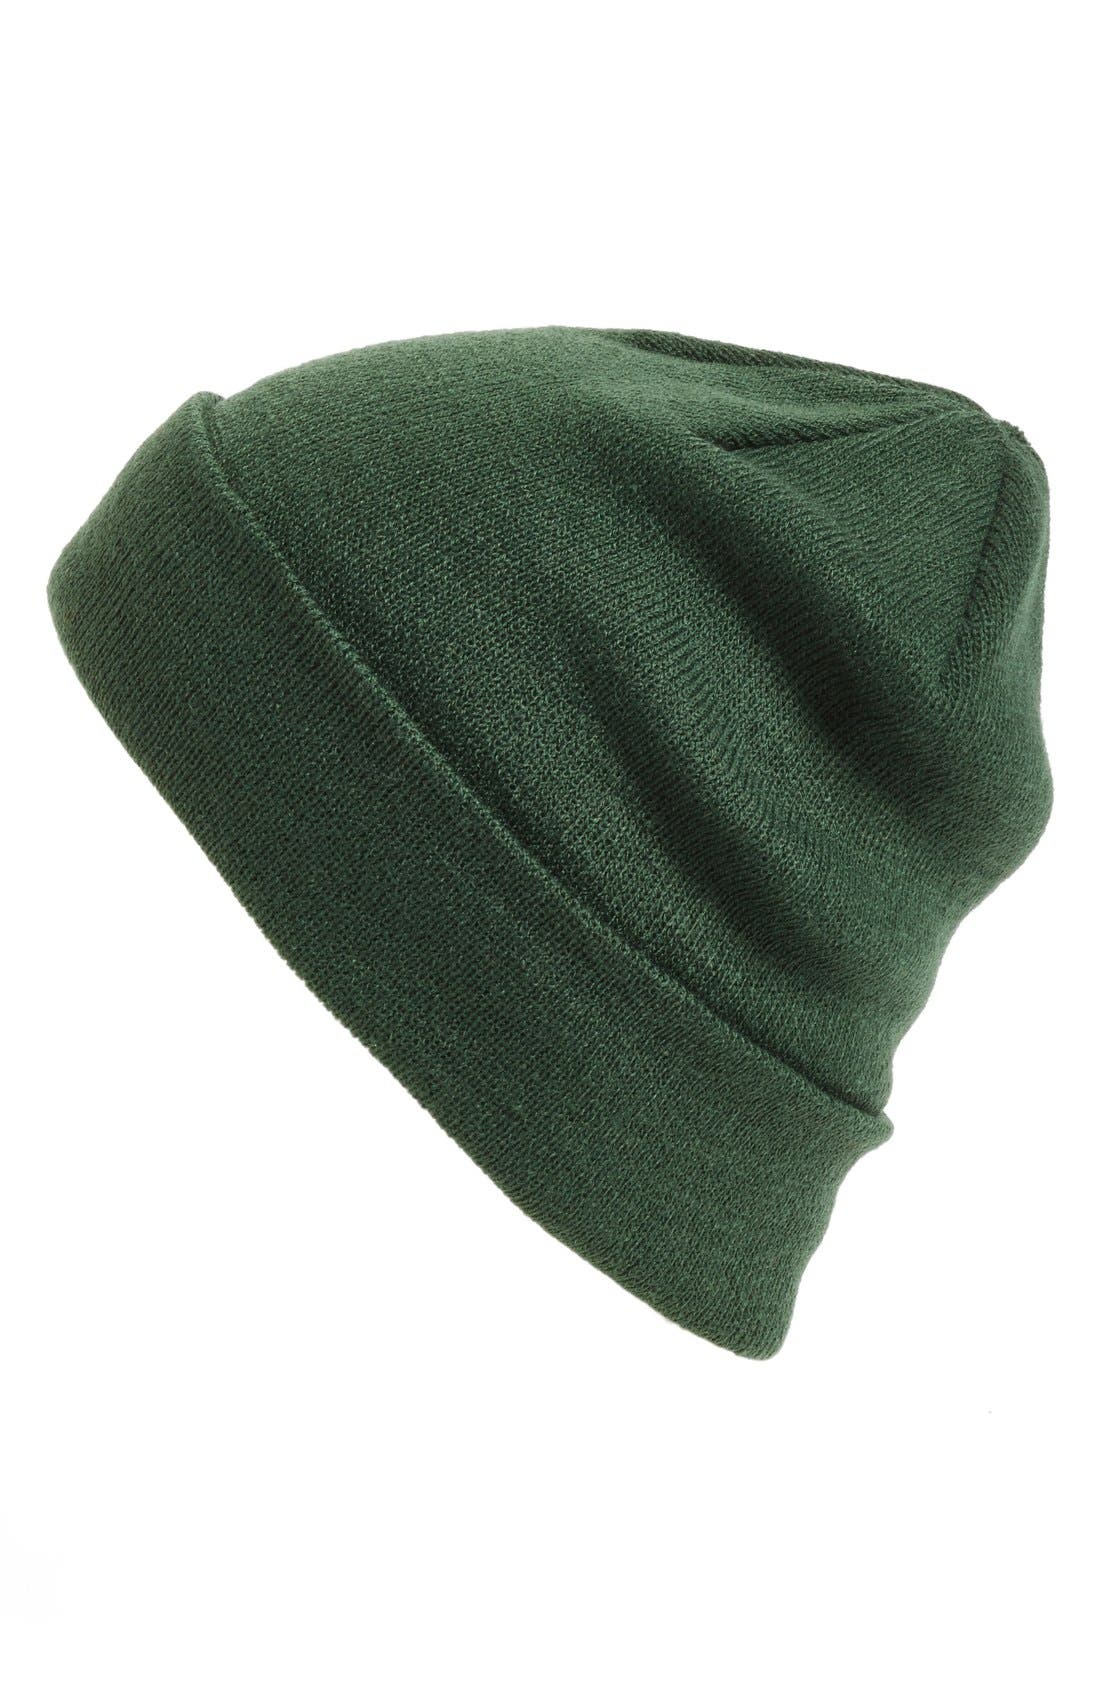 Alternate Image 1 Selected - BP. Knit Beanie